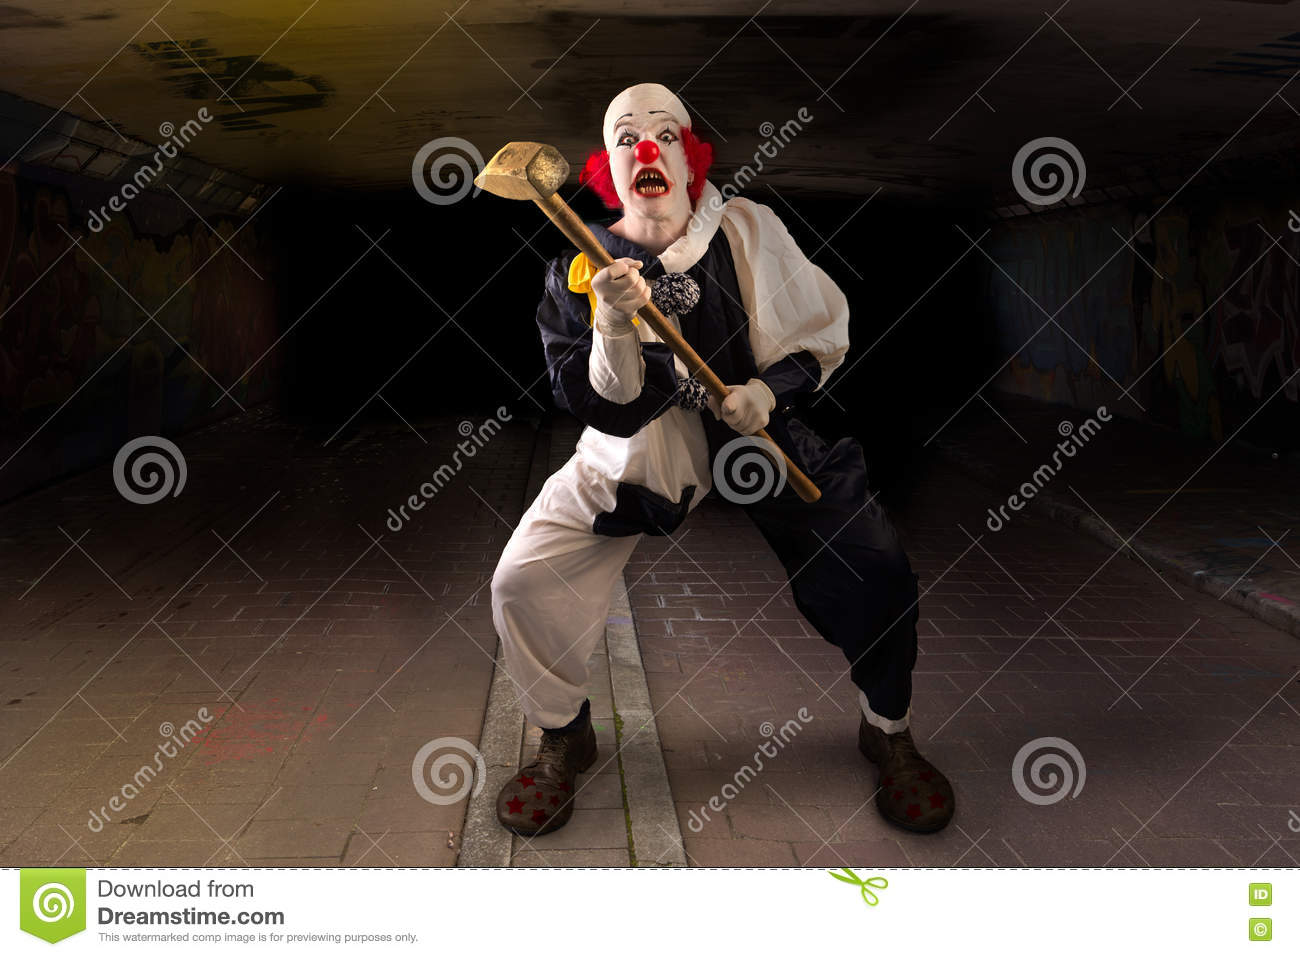 Scary clown with a hammer